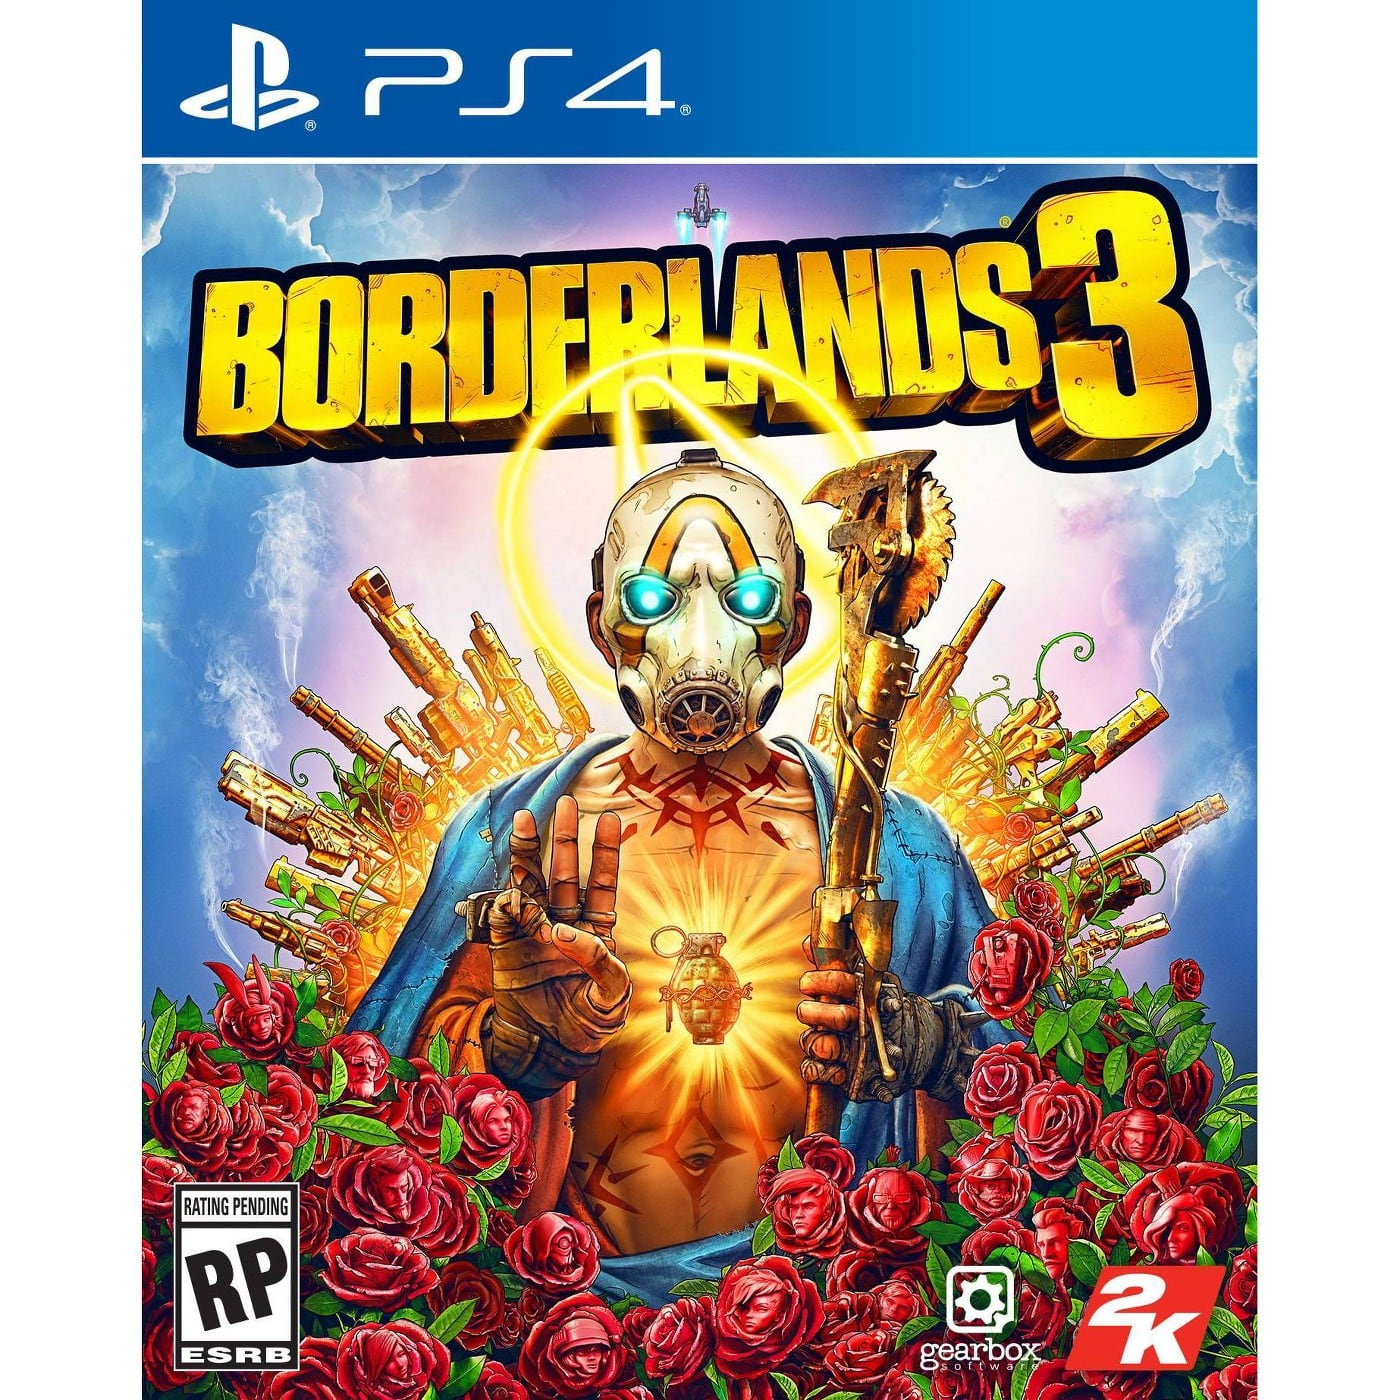 Target REDcard Members: Borderlands 3 Pre-Order (PS4 or Xbox One) + $10 Target Gift Card + Extra 5% Discount for $55.12 + Free Shipping via Target